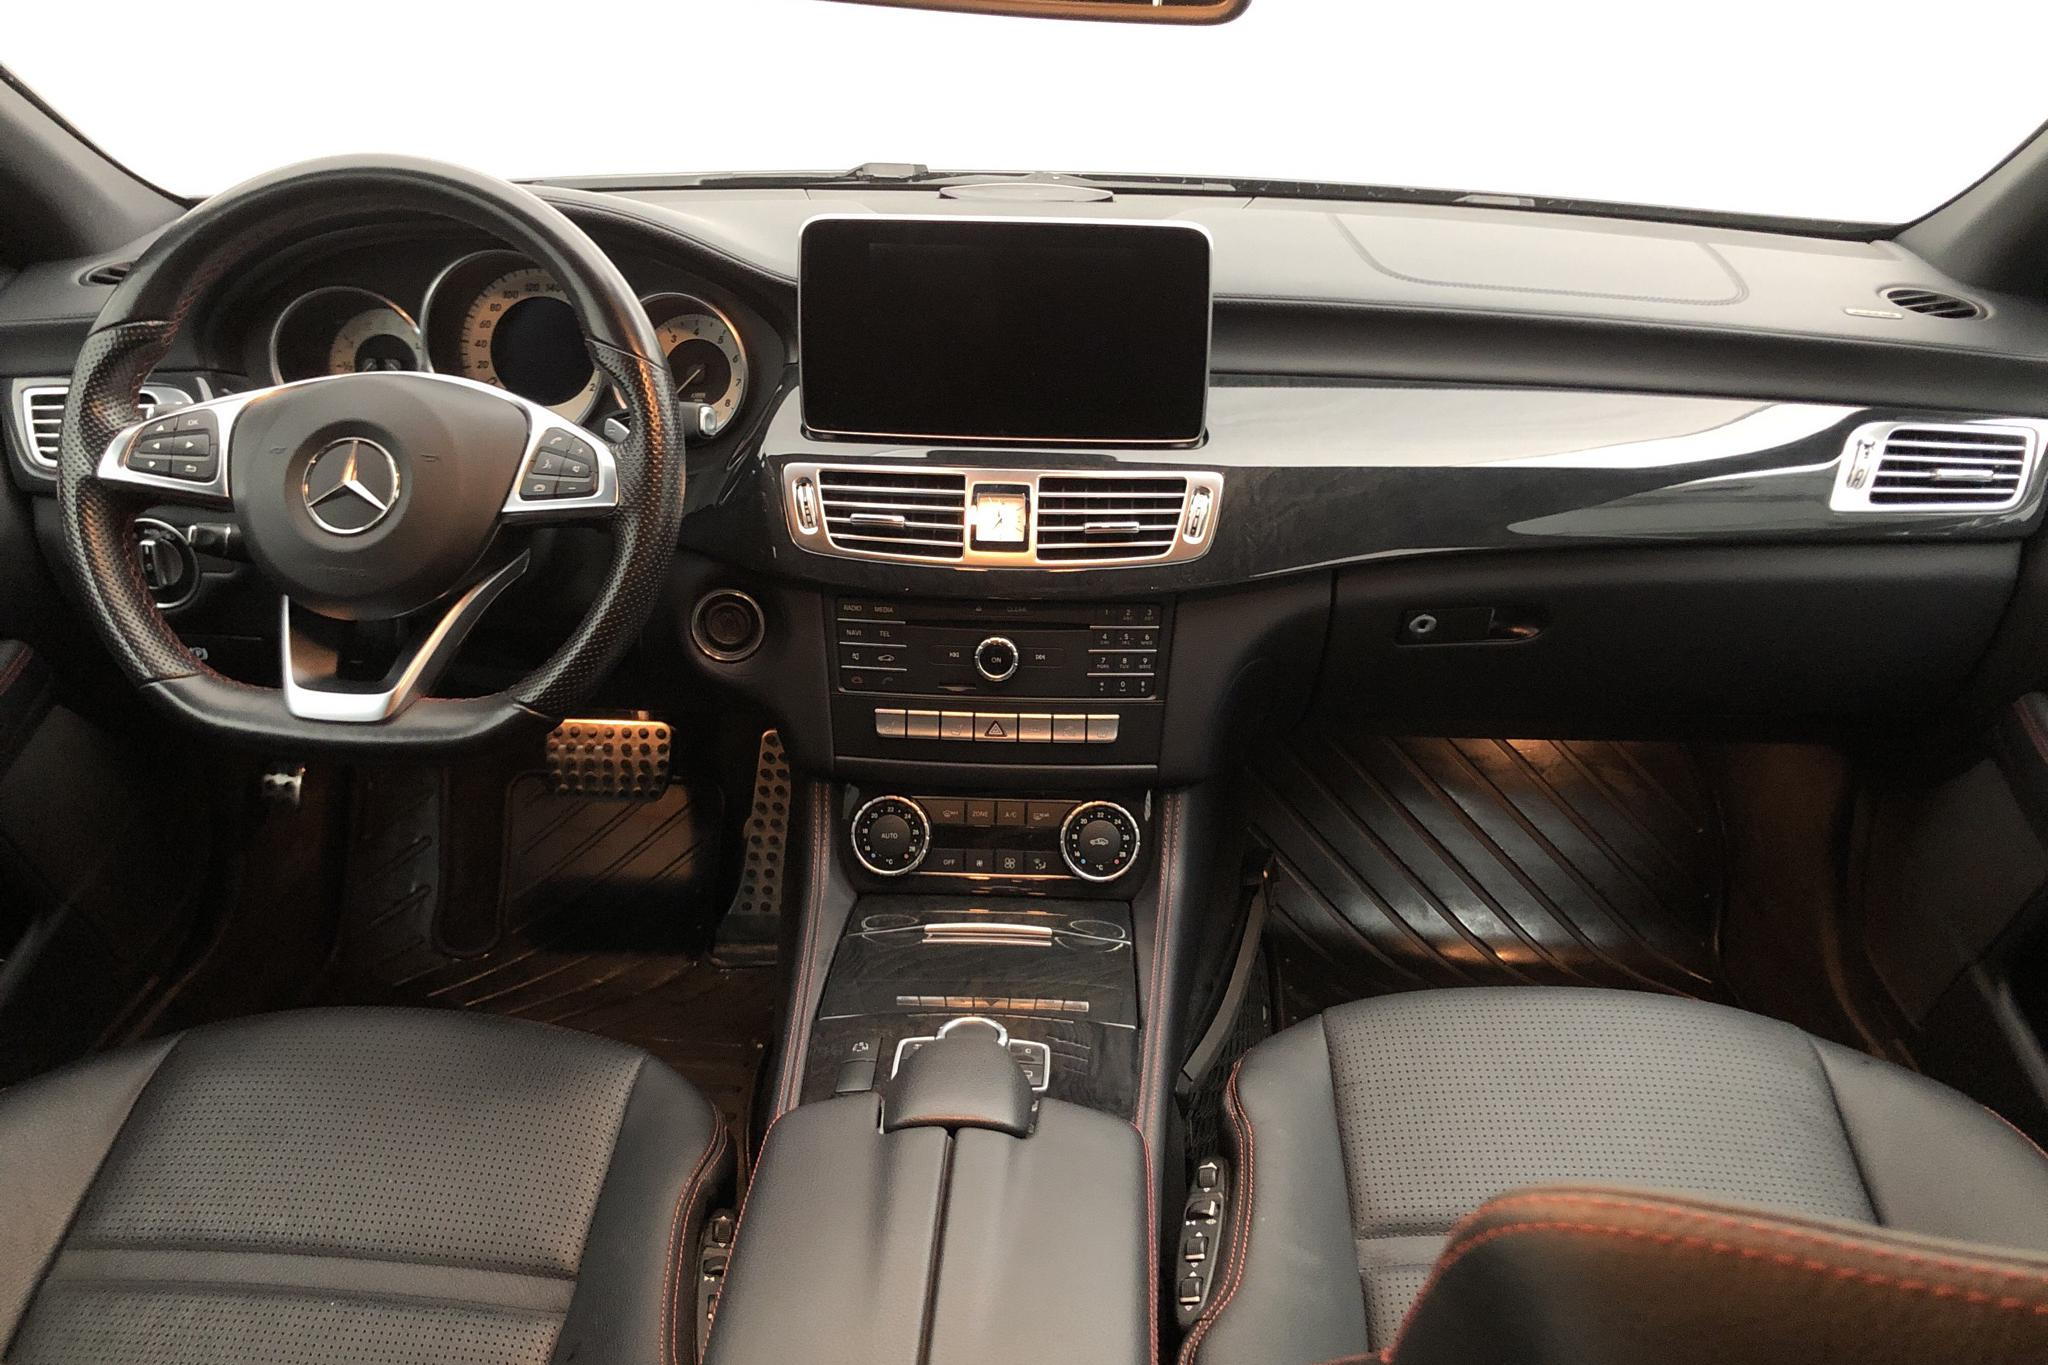 Mercedes CLS 400 4MATIC Shooting Brake X218 (333hk) - 74 000 km - black - 2015